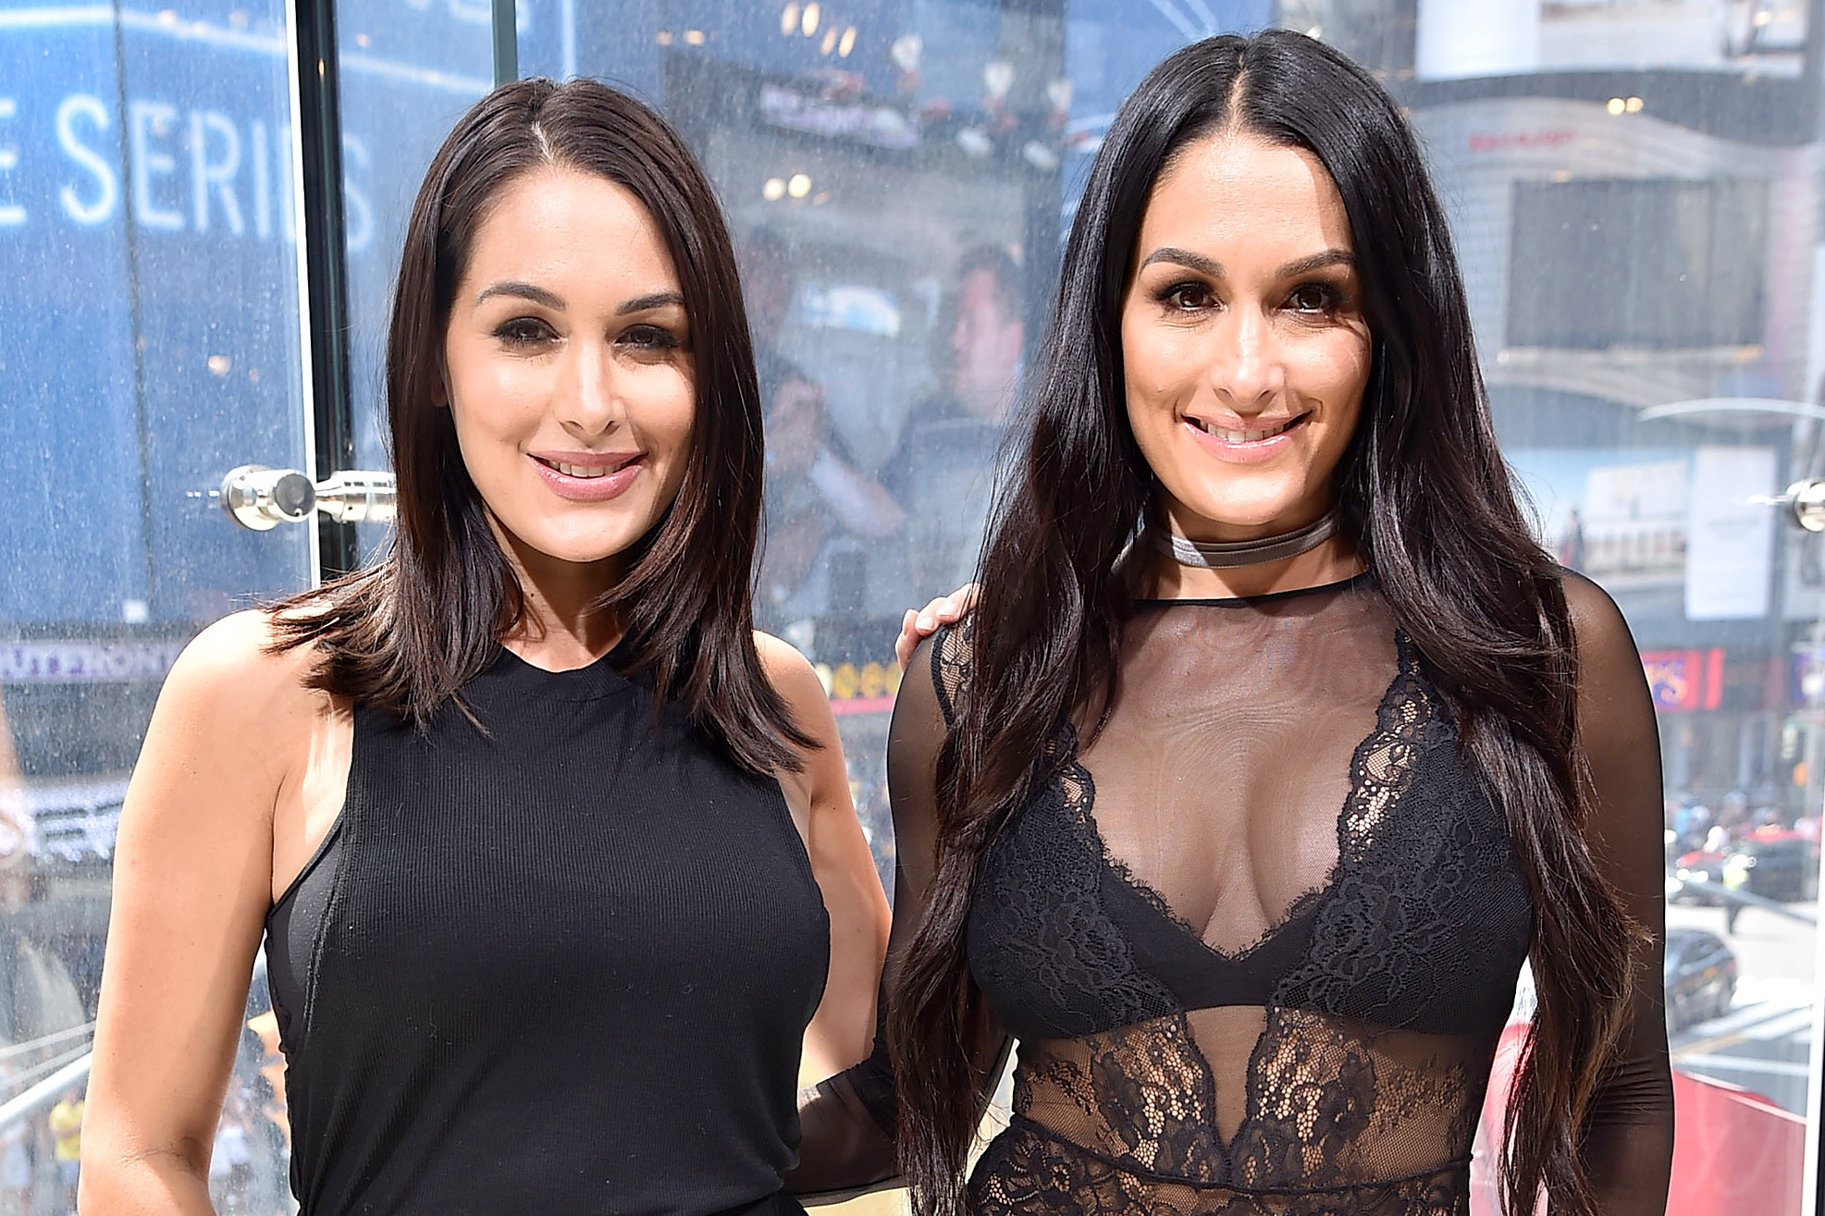 Nikki Bella and Brie Bella